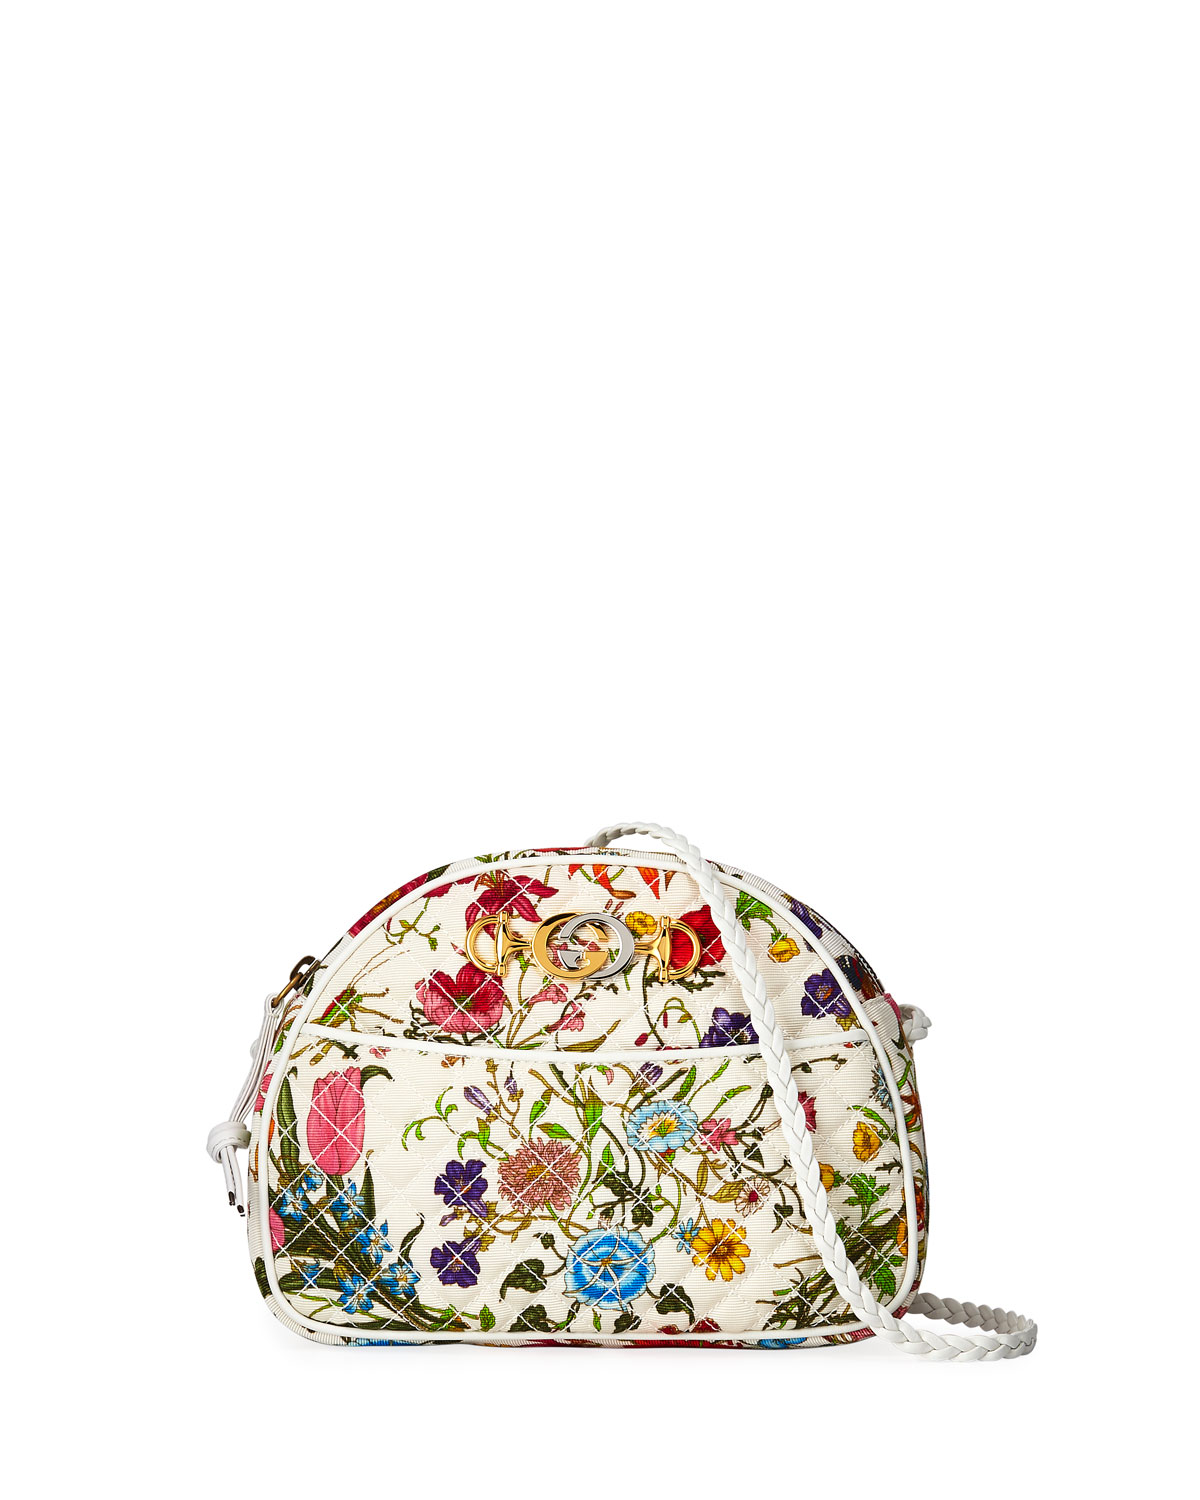 Gucci Trapuntata Small Quilted Floral Shoulder Bag  22933f6673081